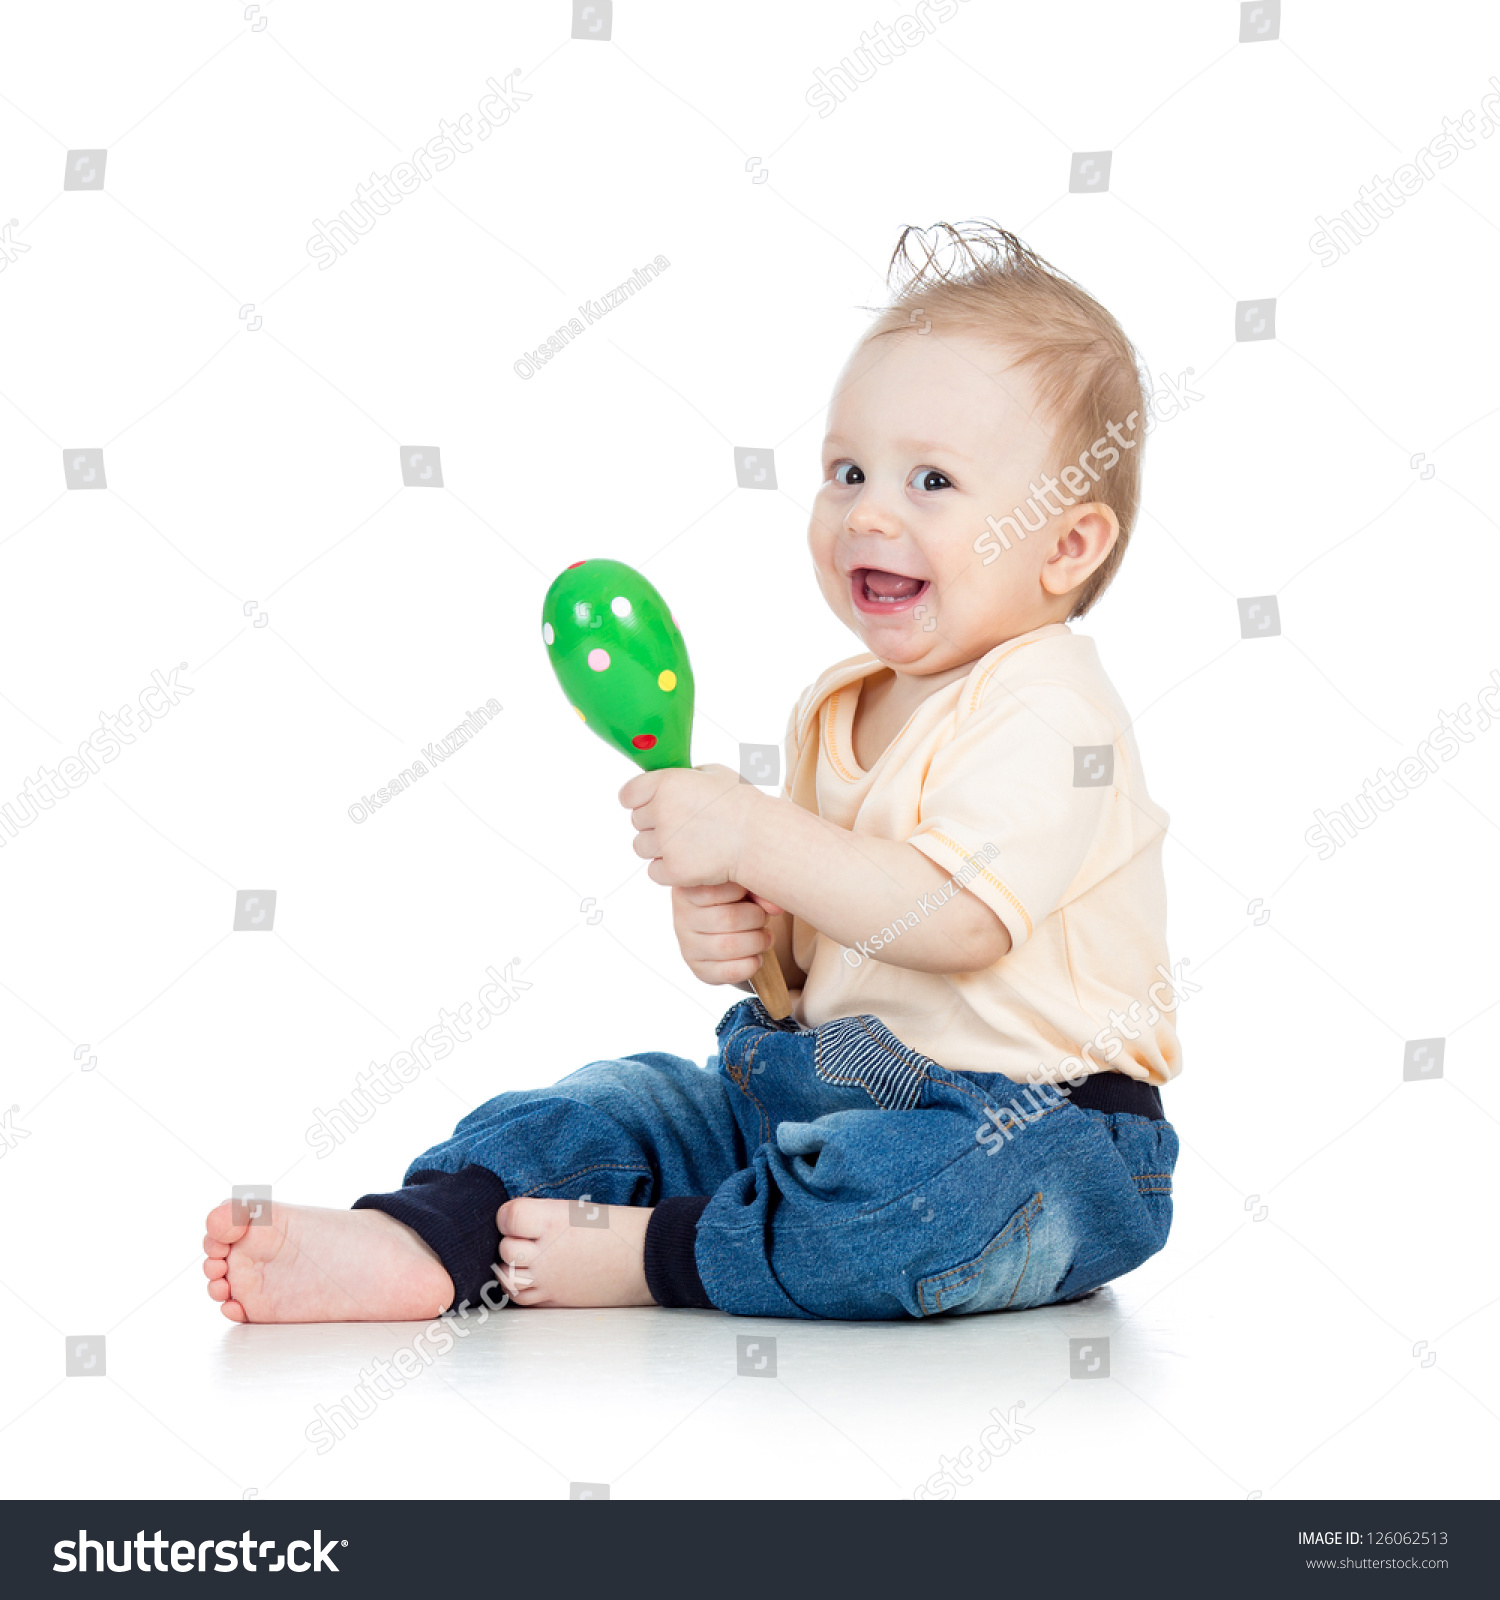 Boy Toys Background : Baby boy with musical toys isolated on white background